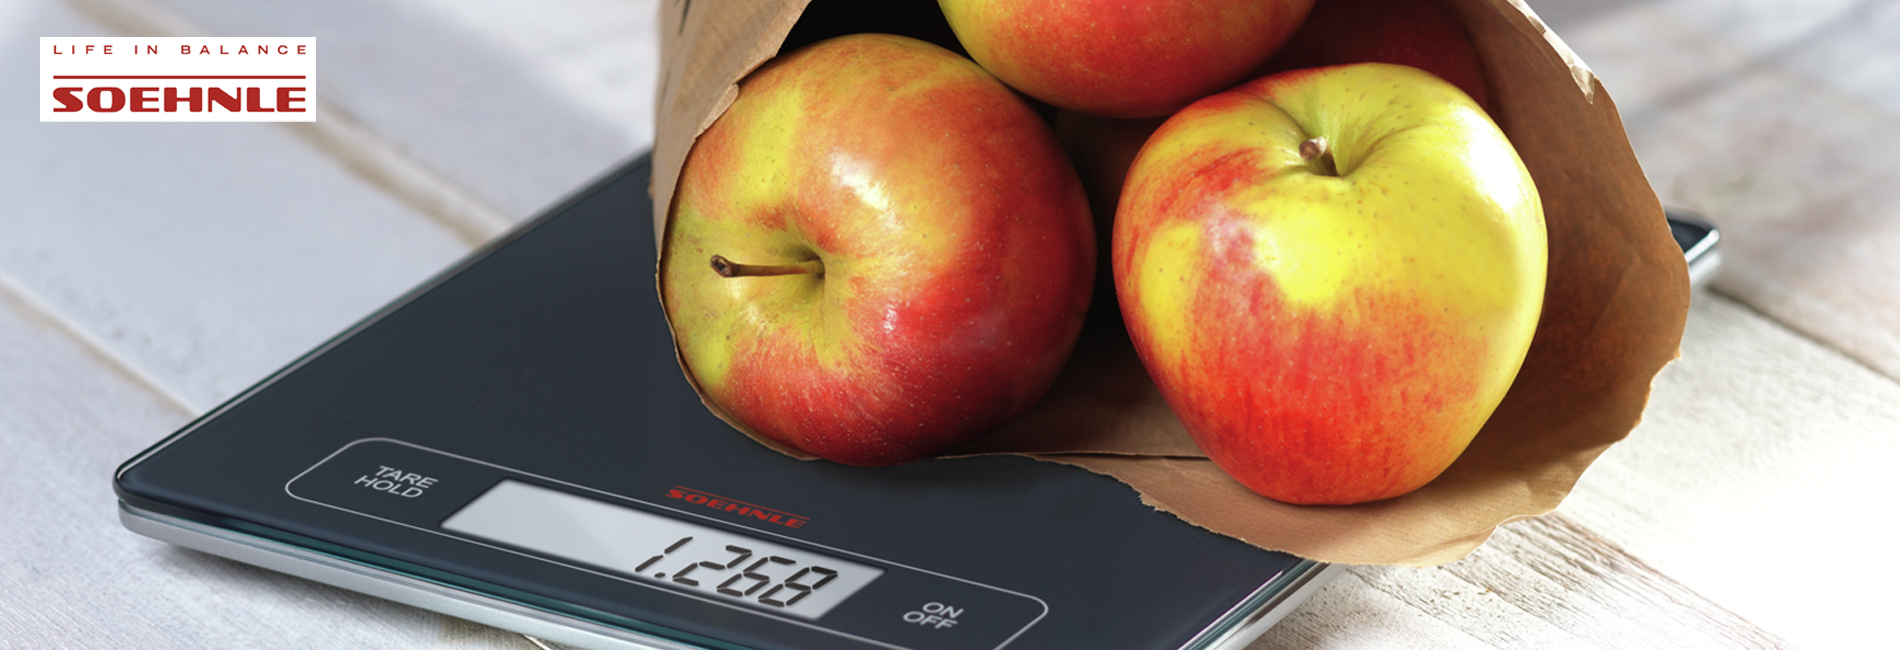 Soehnle Kitchen Scales : More fun while cooking and baking. Digital Kitchen  Scales,  Analogue  Kitchen Scales